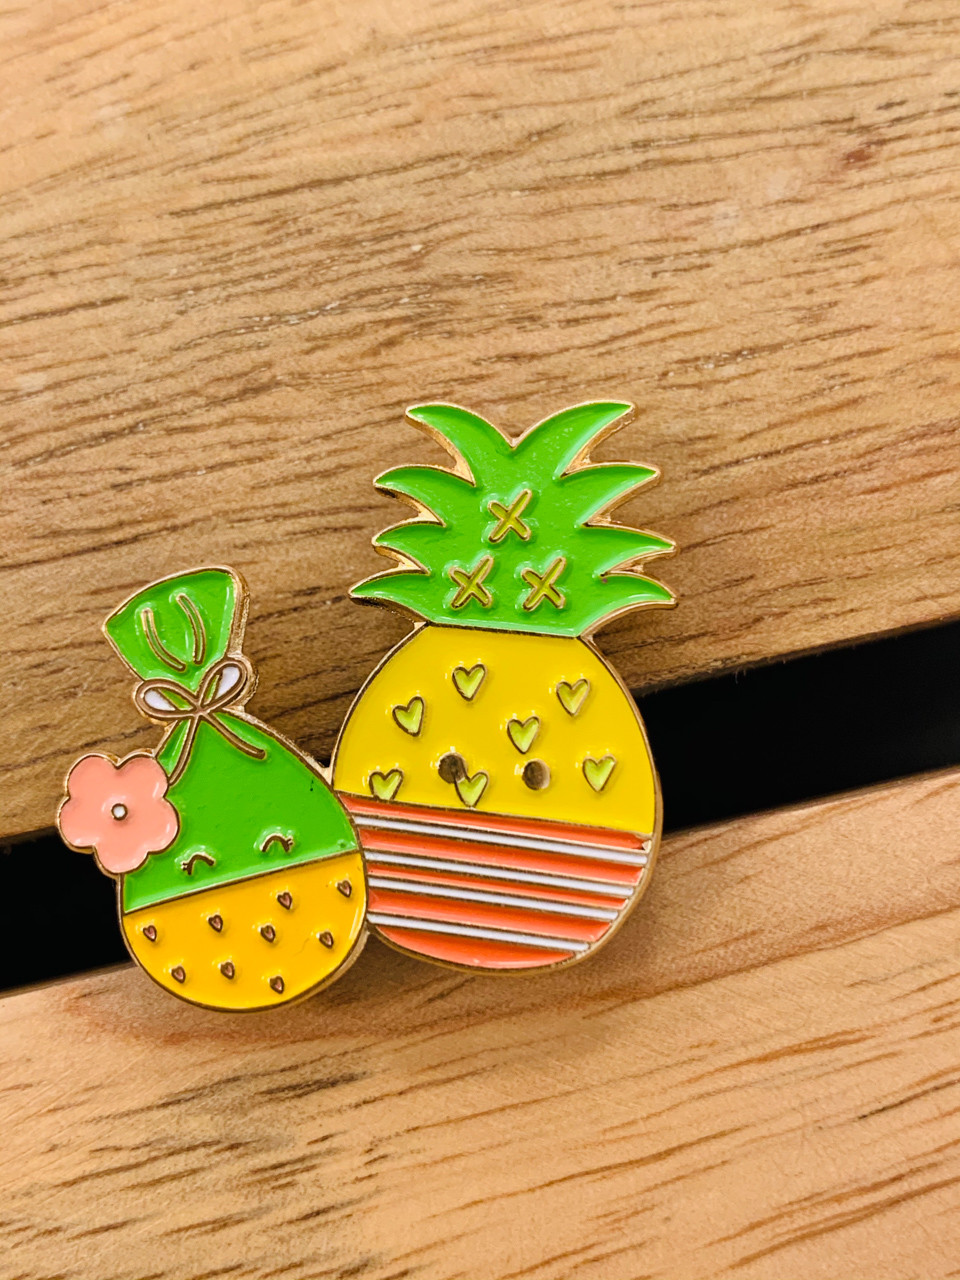 Enamel Pin Aloha Masked Bandits Lau Lau And Pineapple